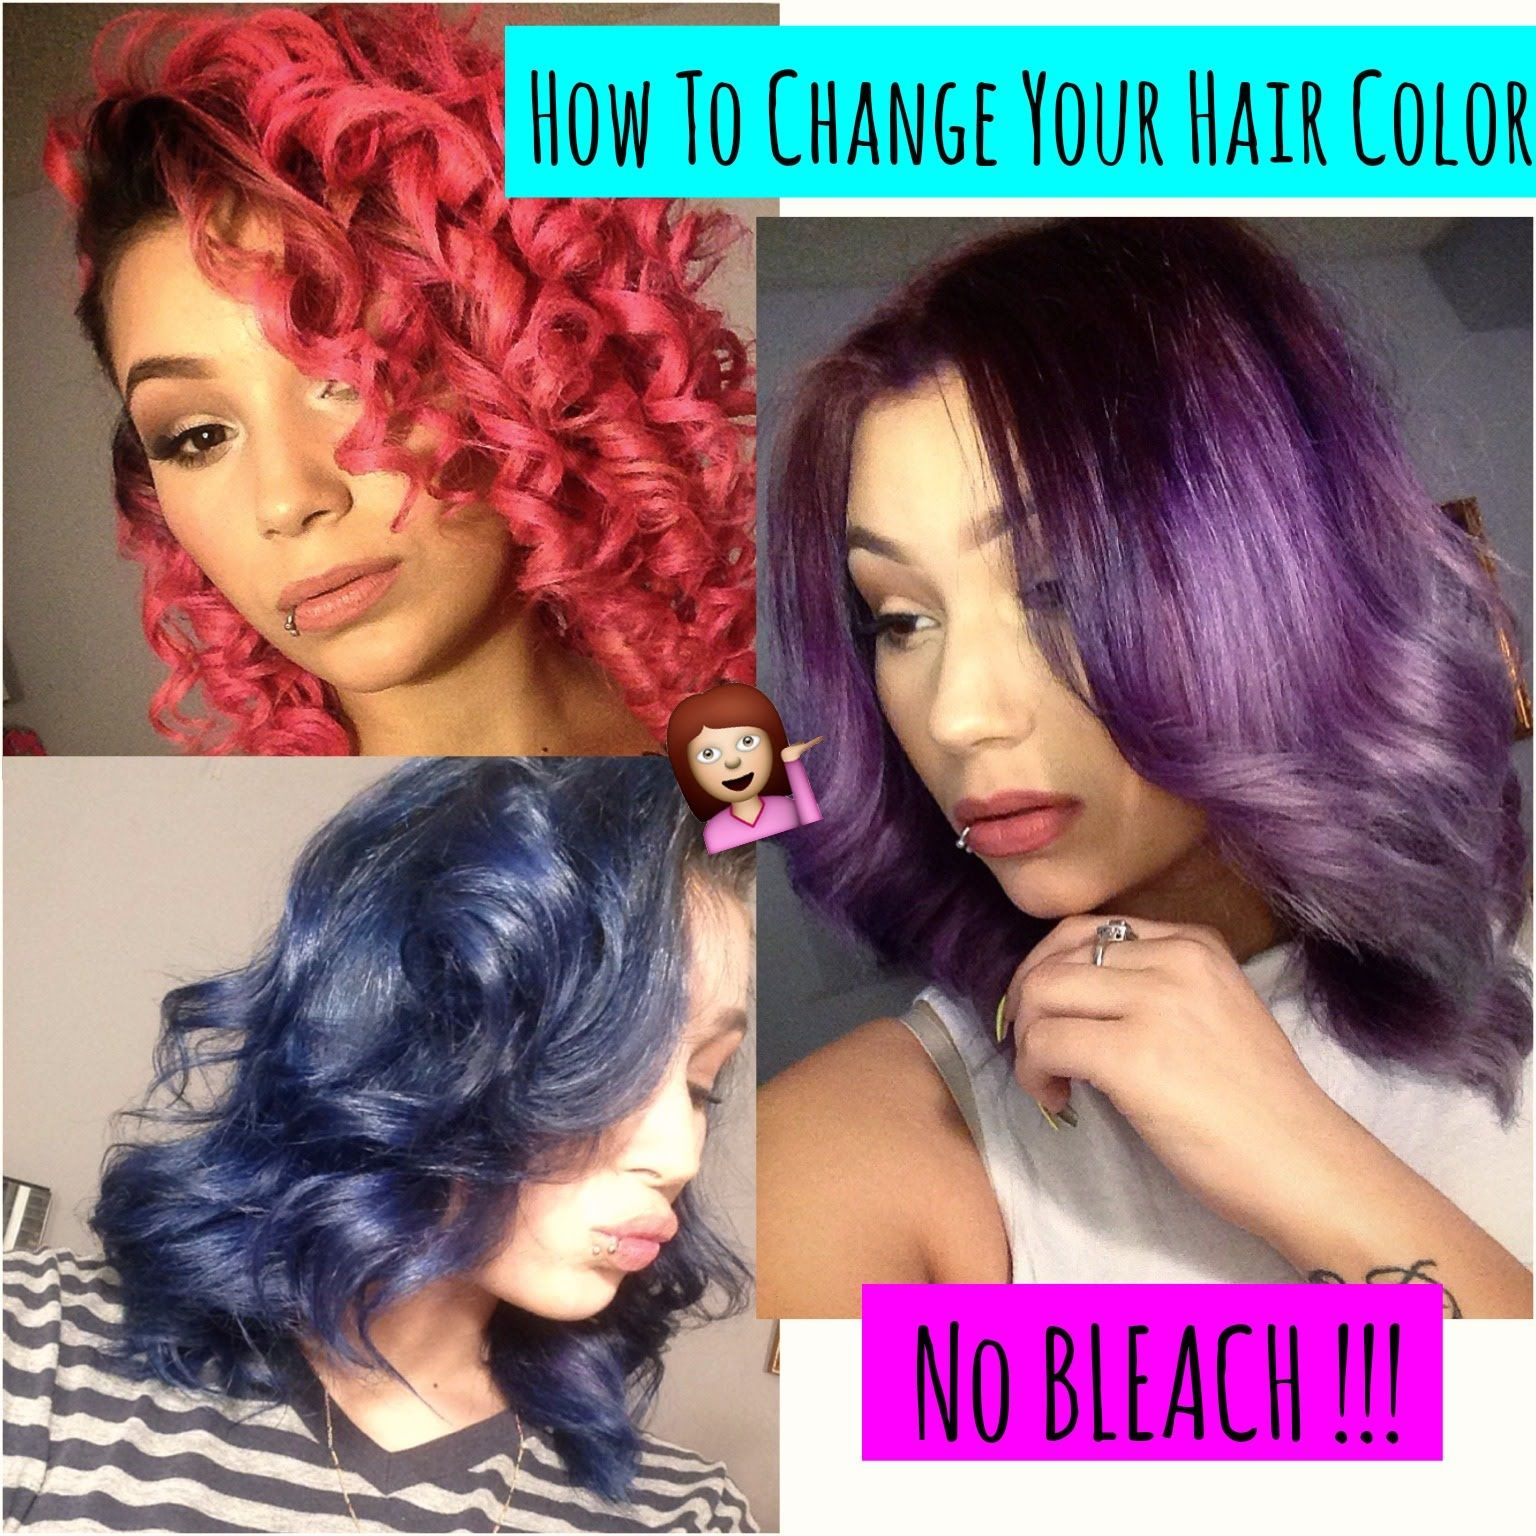 Hey beauties so i know alot of you love bright hair color and dying